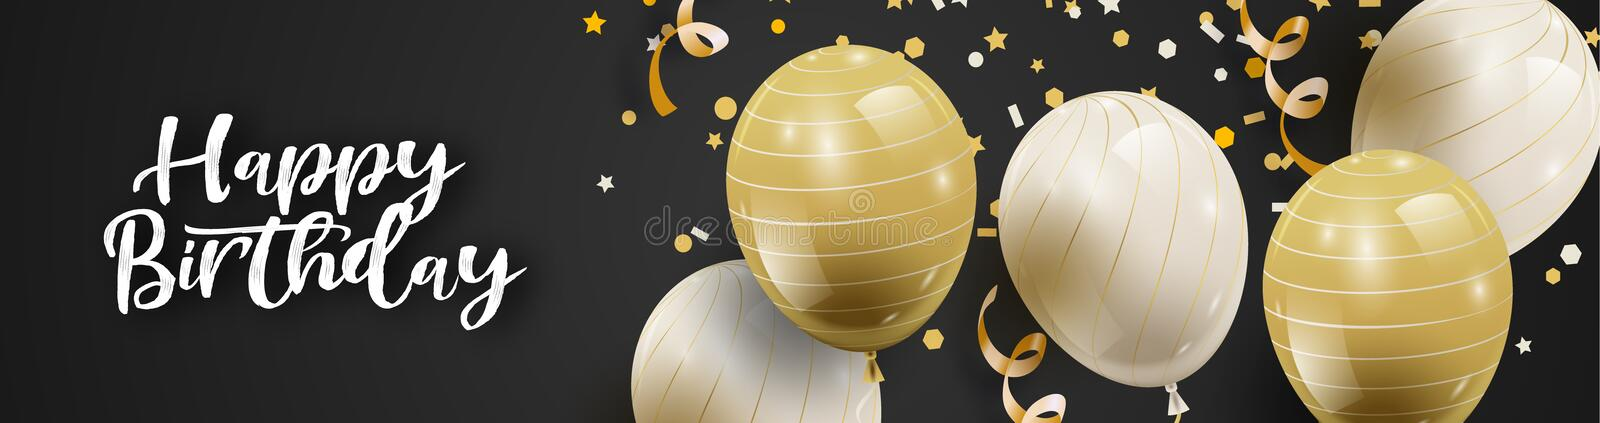 Celebration party background with white and golden balloons and serpentine. royalty free illustration